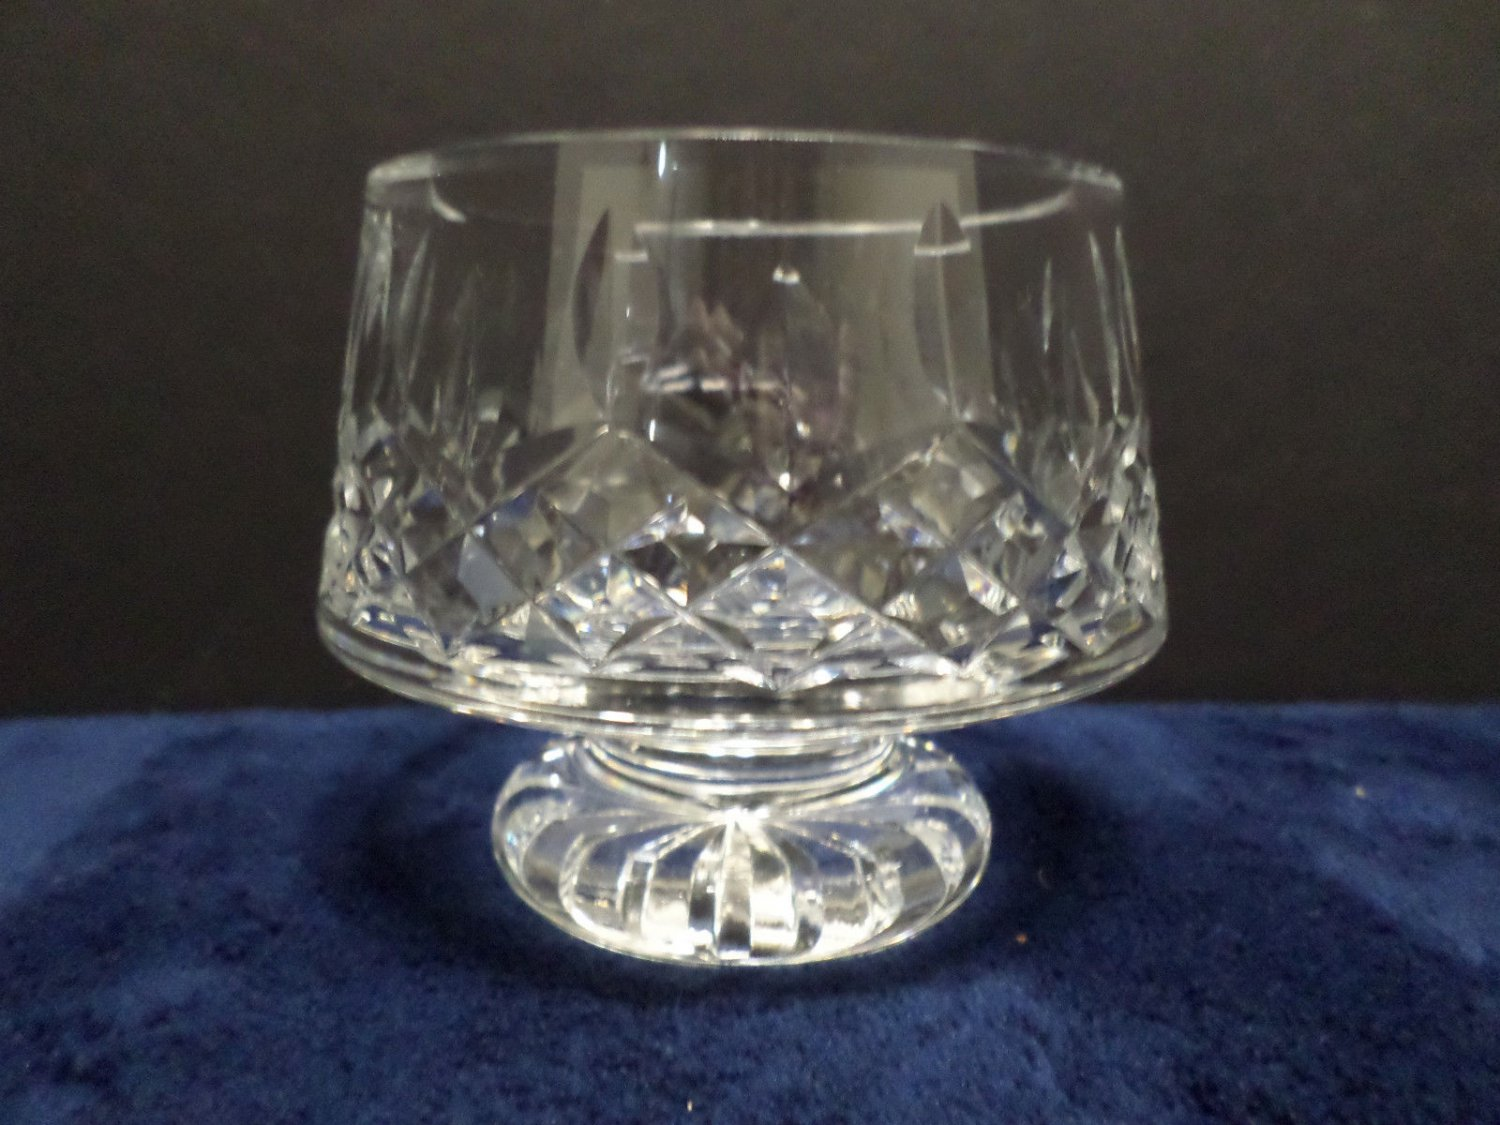 Vintage Crystal Candle Holder Decorative Collectible